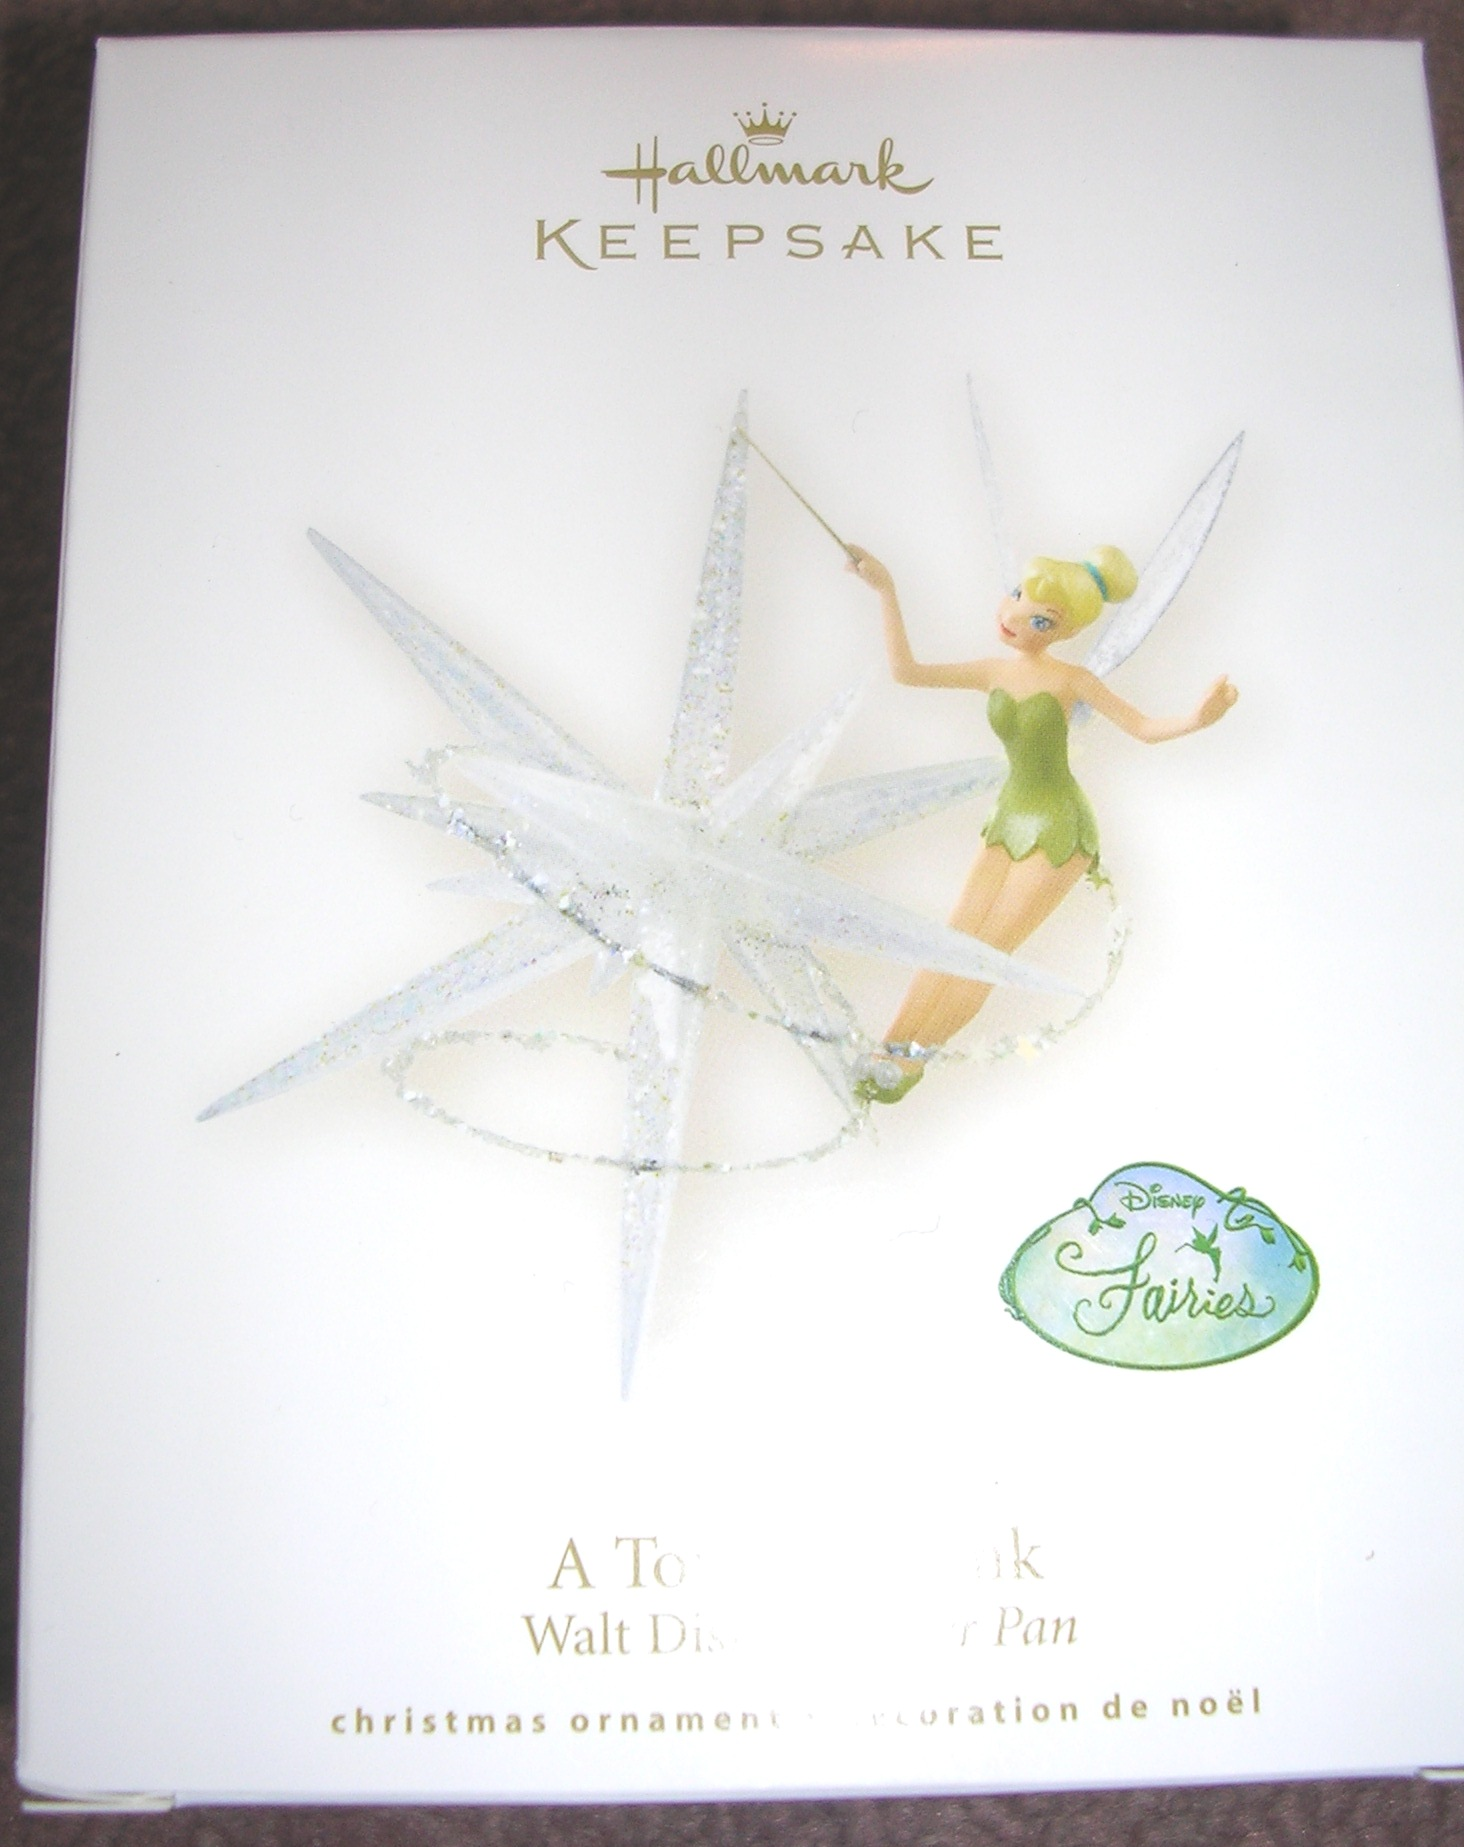 Hallmark Ornament A Touch of Tink Peter Pan 2008